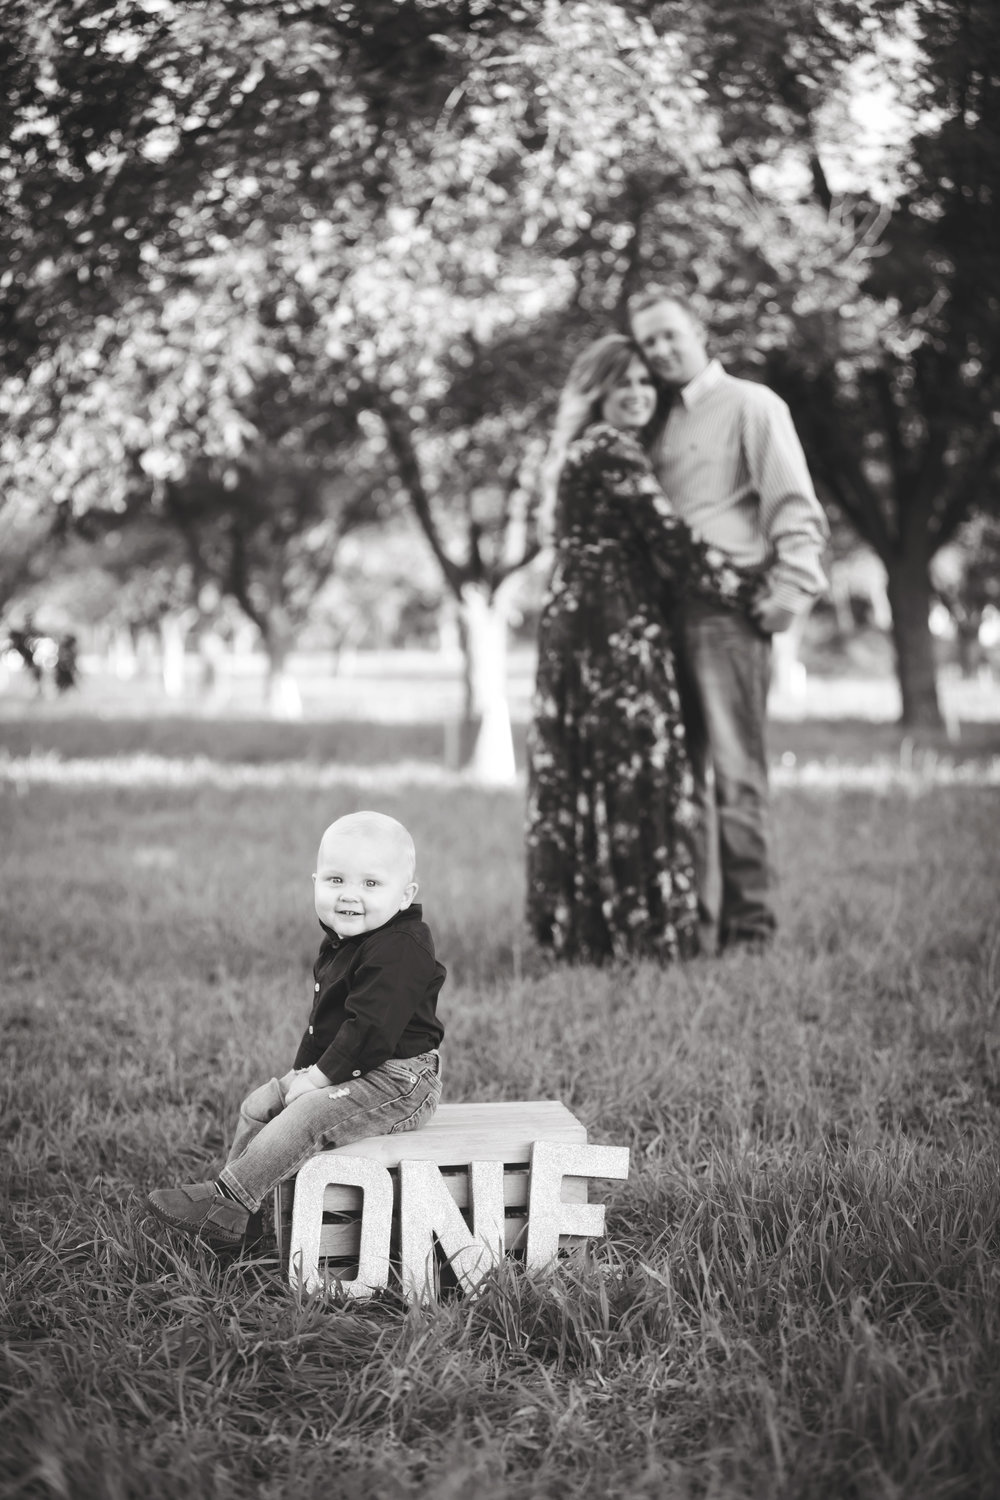 Marble_Falls_Photographer_Horseshoe_Bay_Stokes_Family13.jpg